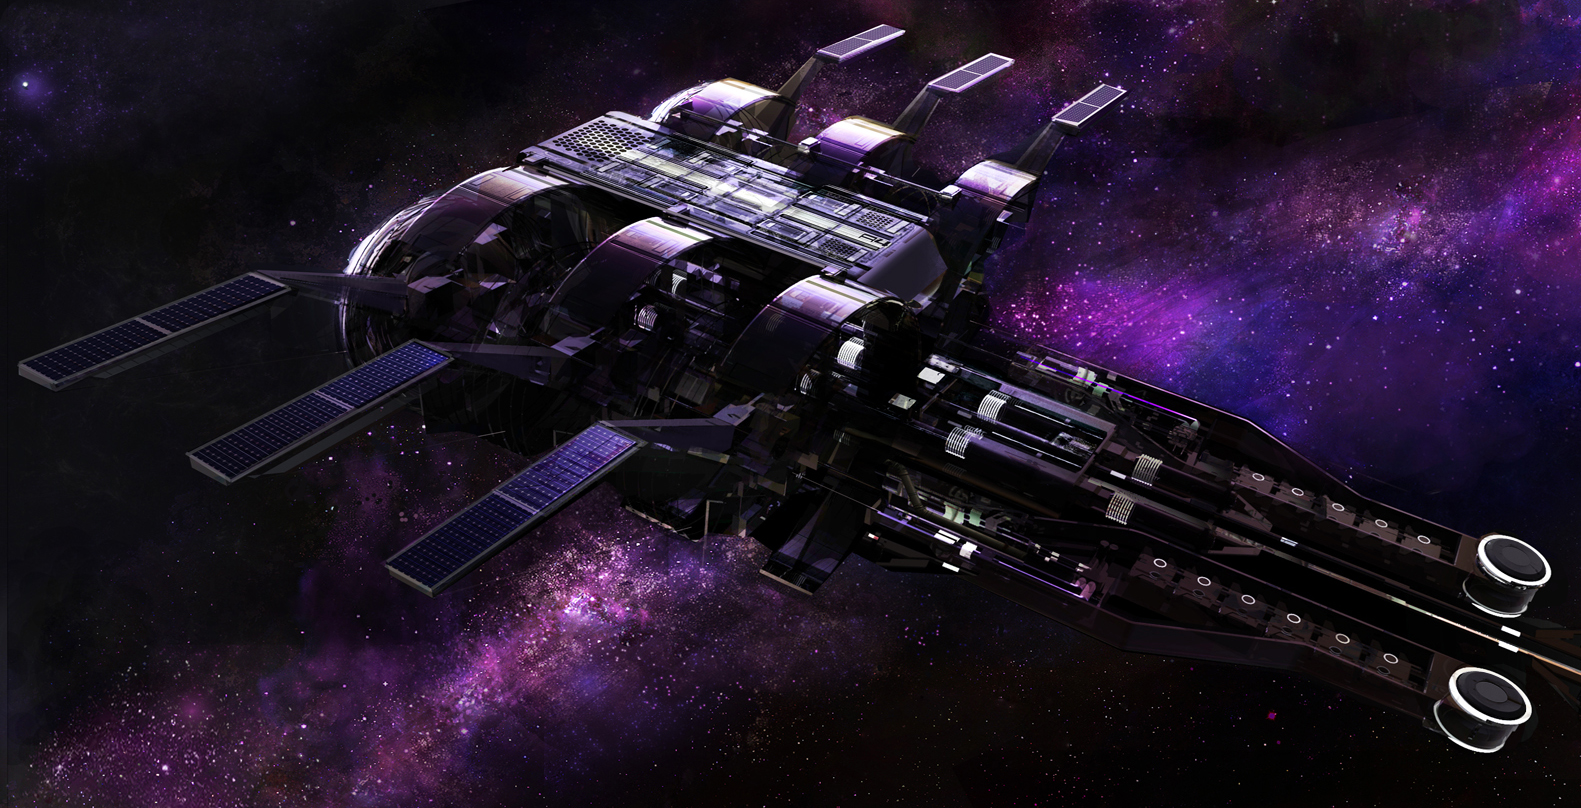 Spaceship From the Black Hole USS Cygnus - Pics about space